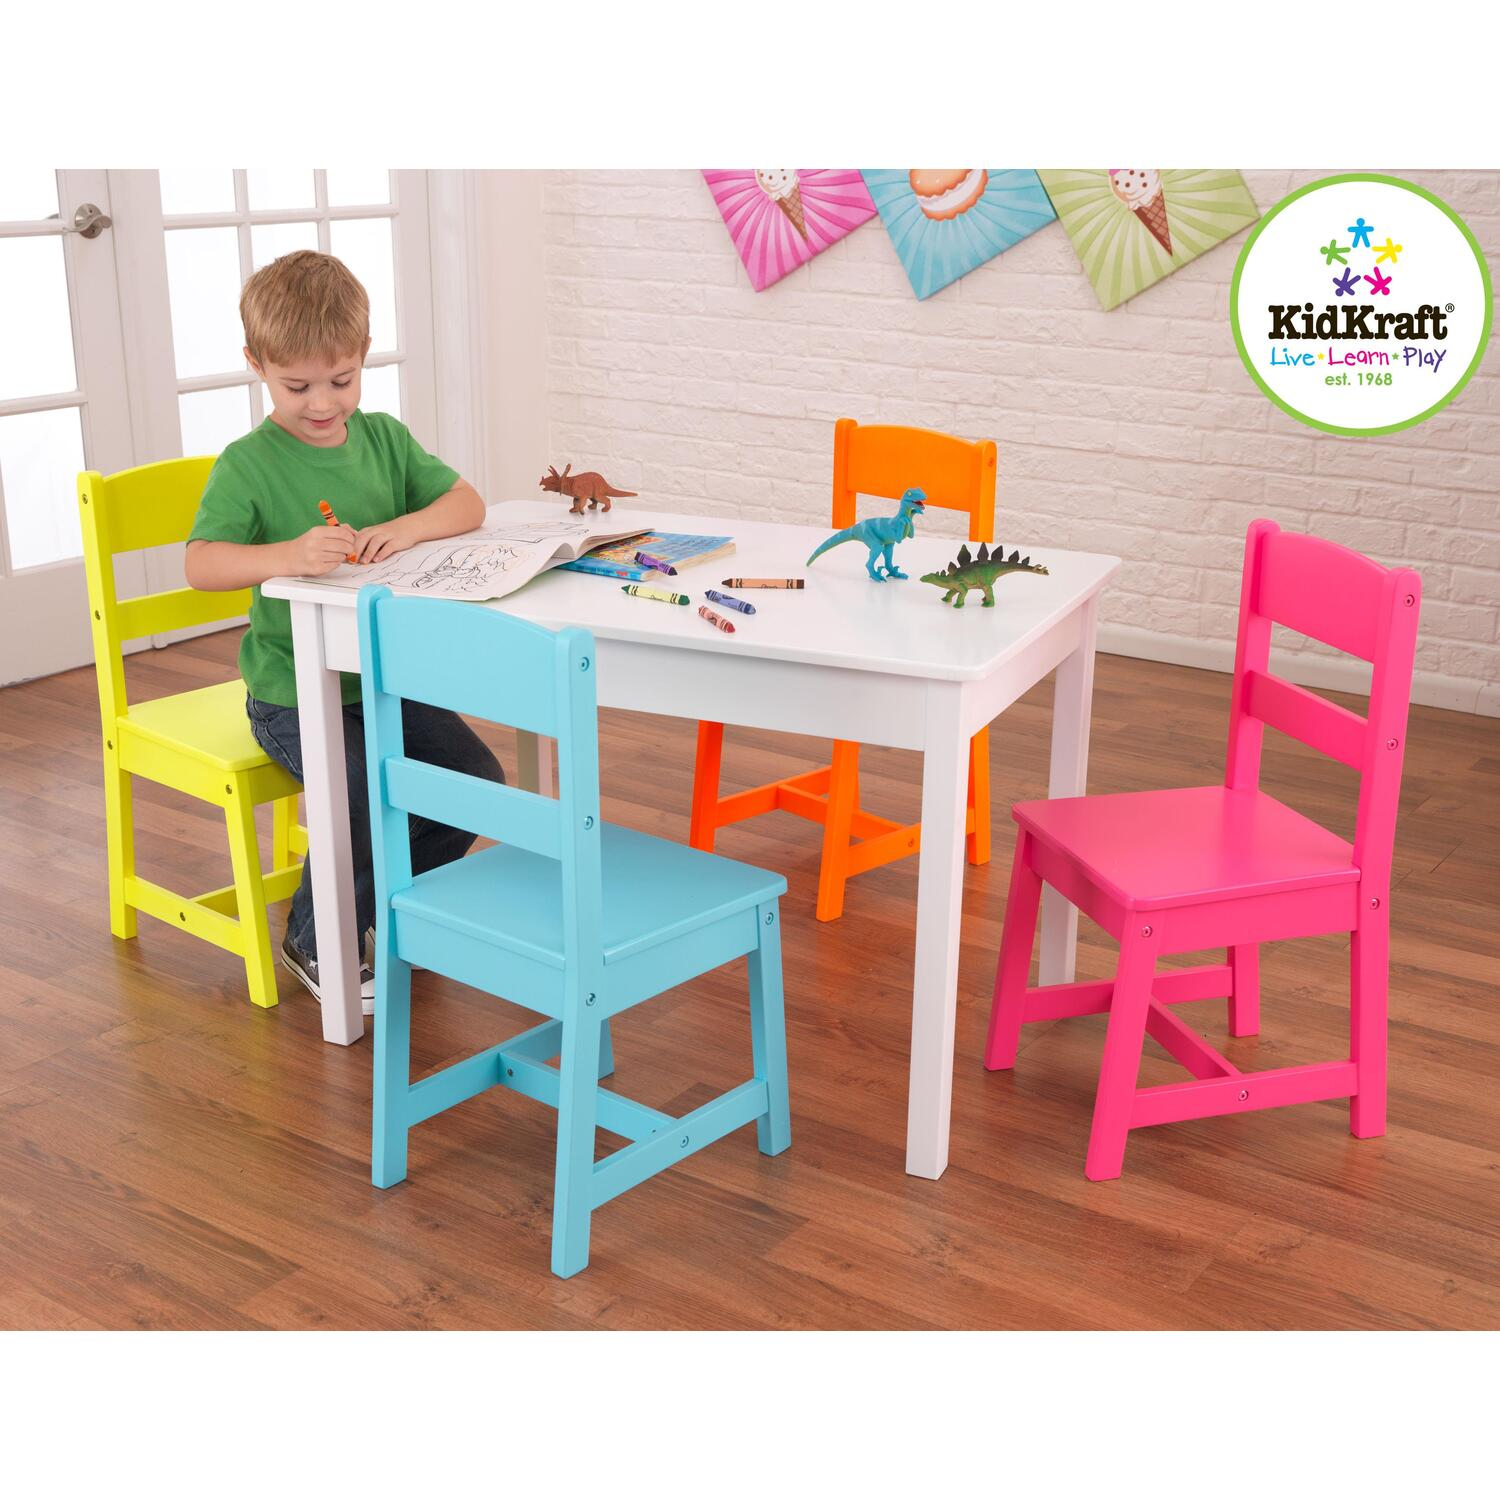 KidKraft Highlighter Table & 4 Chair Set by OJ merce